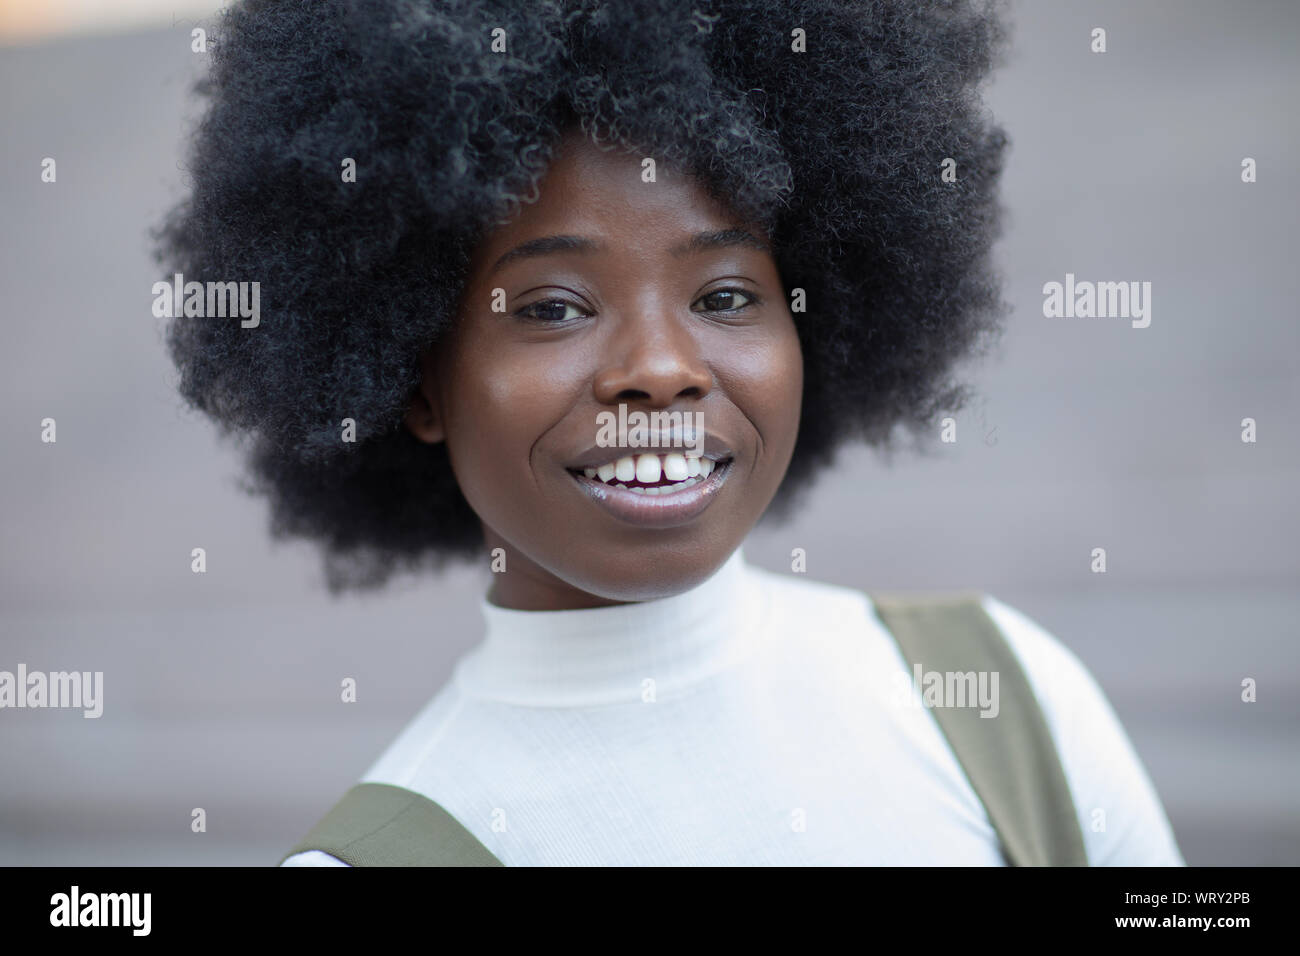 Gorgeous looking young black girl smiling broadly looking at the camera Stock Photo